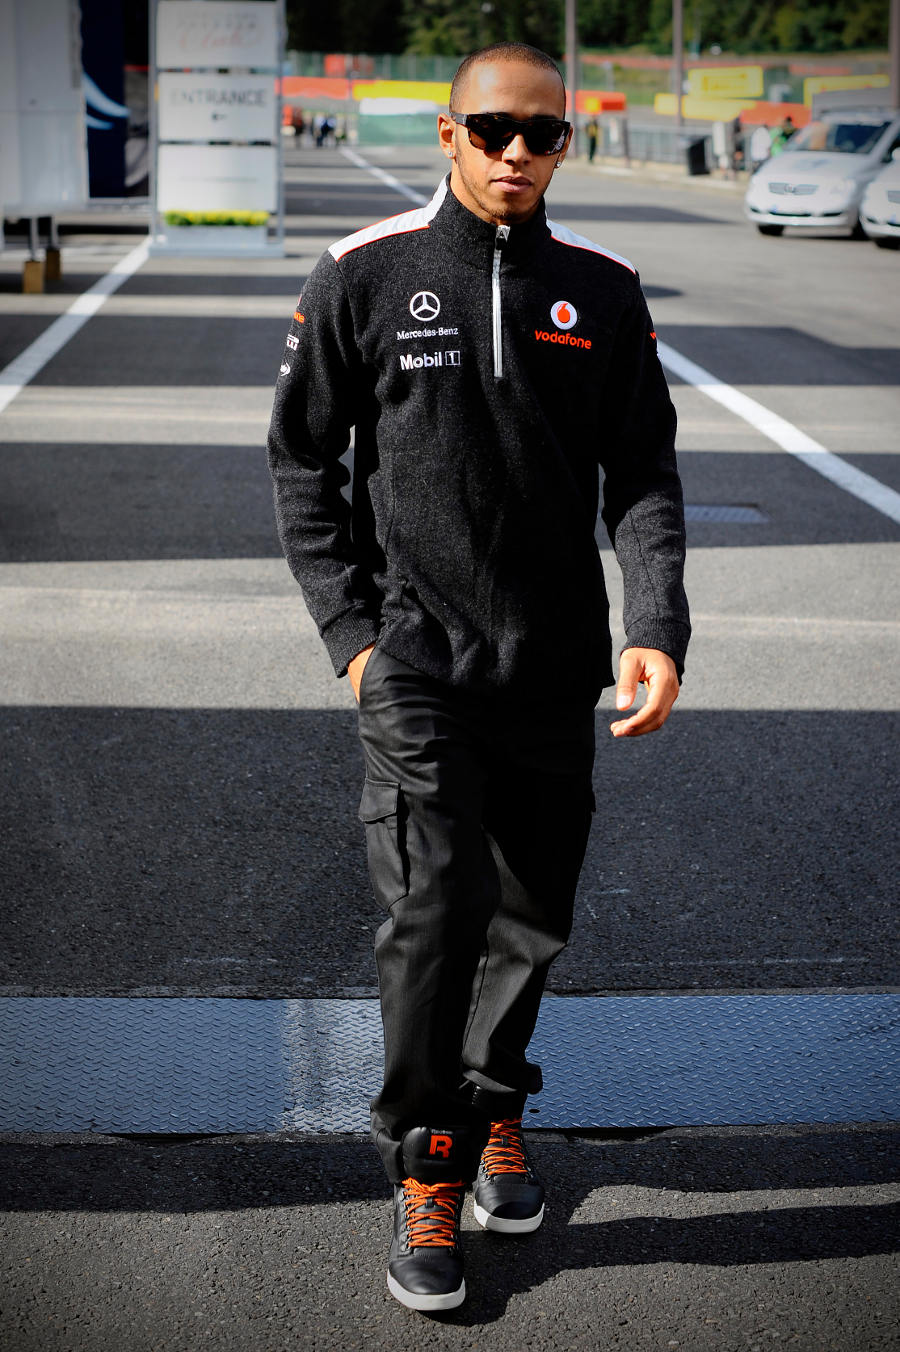 Lewis Hamilton walks through the paddock on Thursday